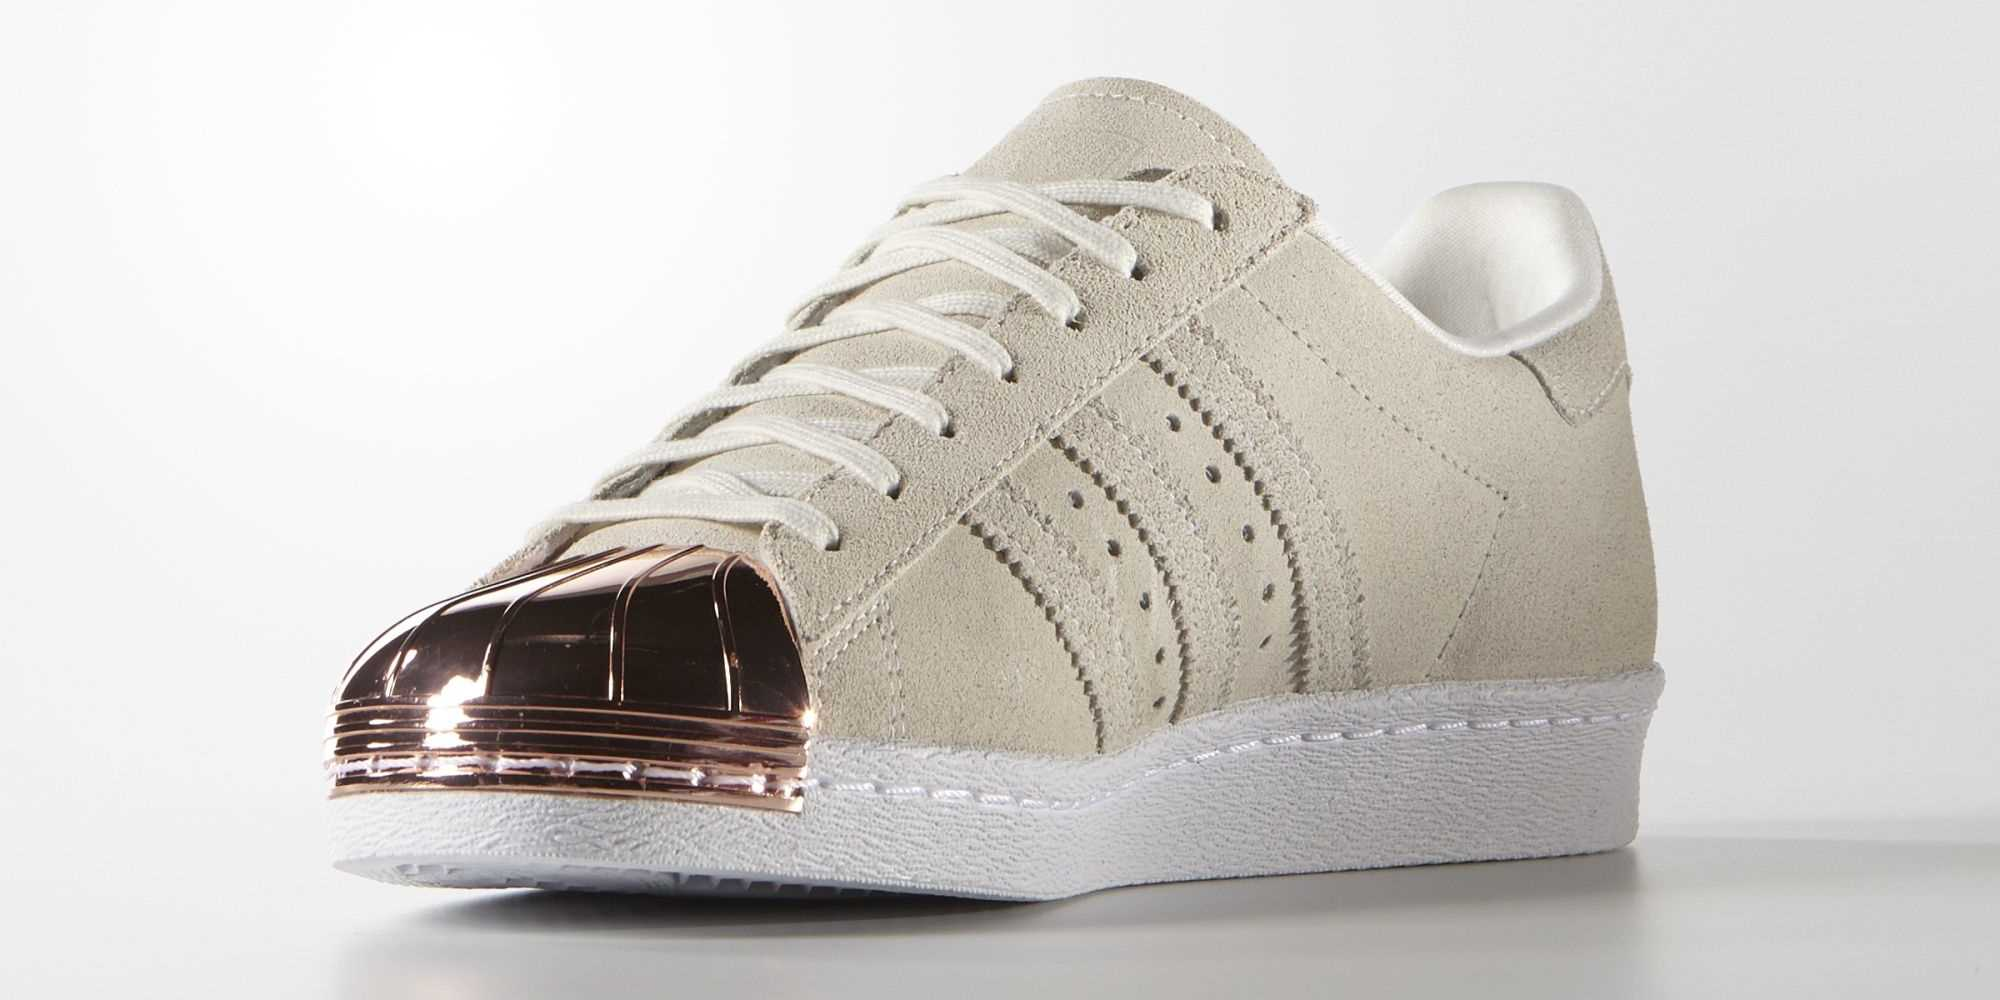 adidas superstar 80s metal toe gold